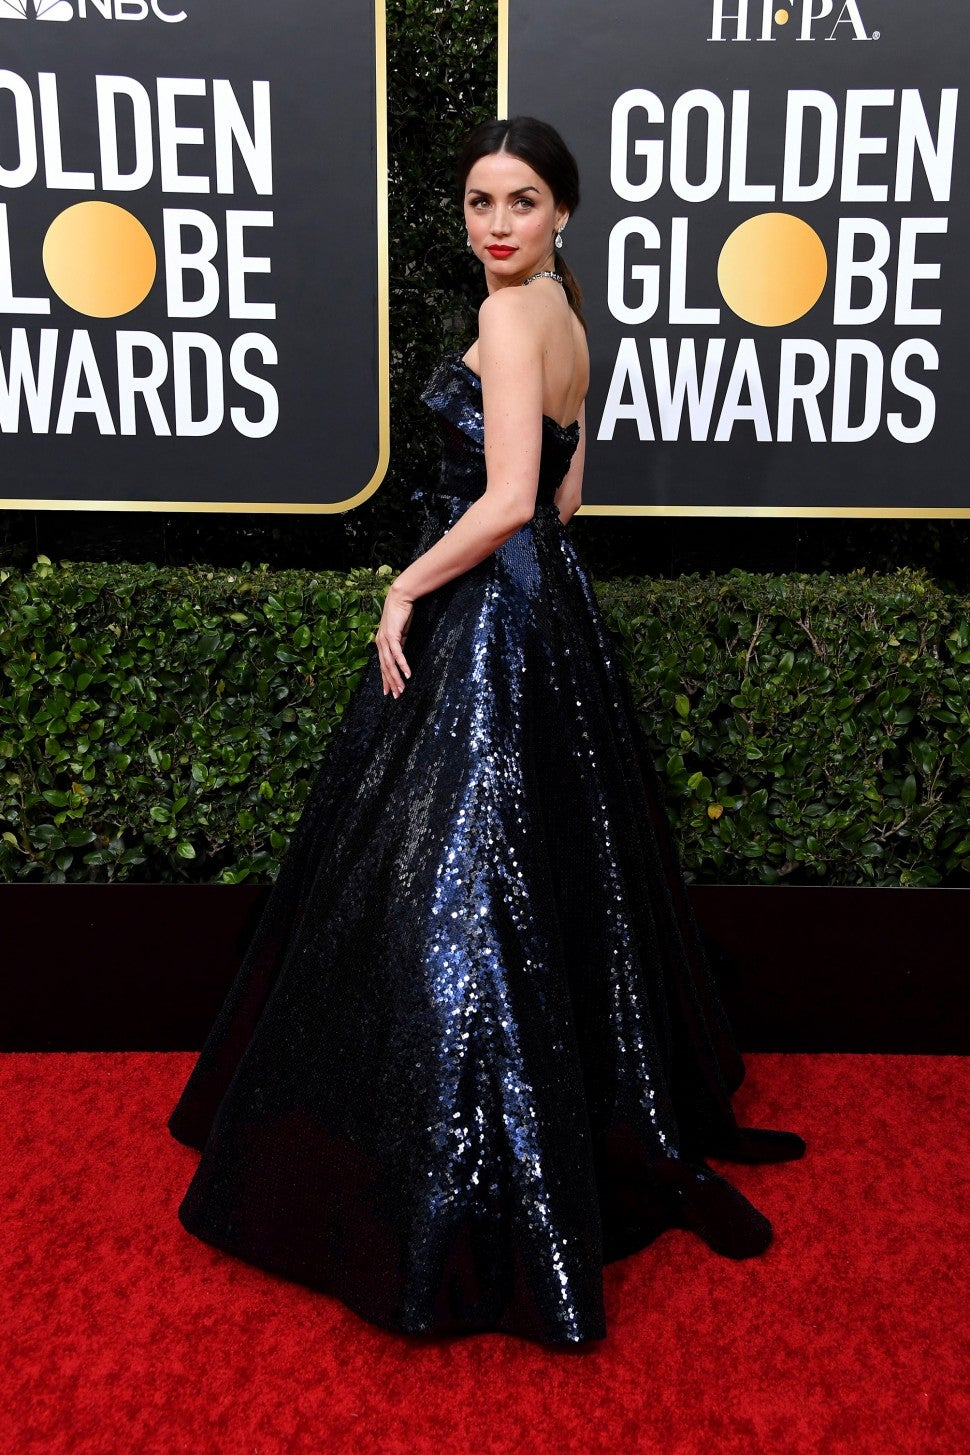 Ana de Armas at the 77th Annual Golden Globe Awards